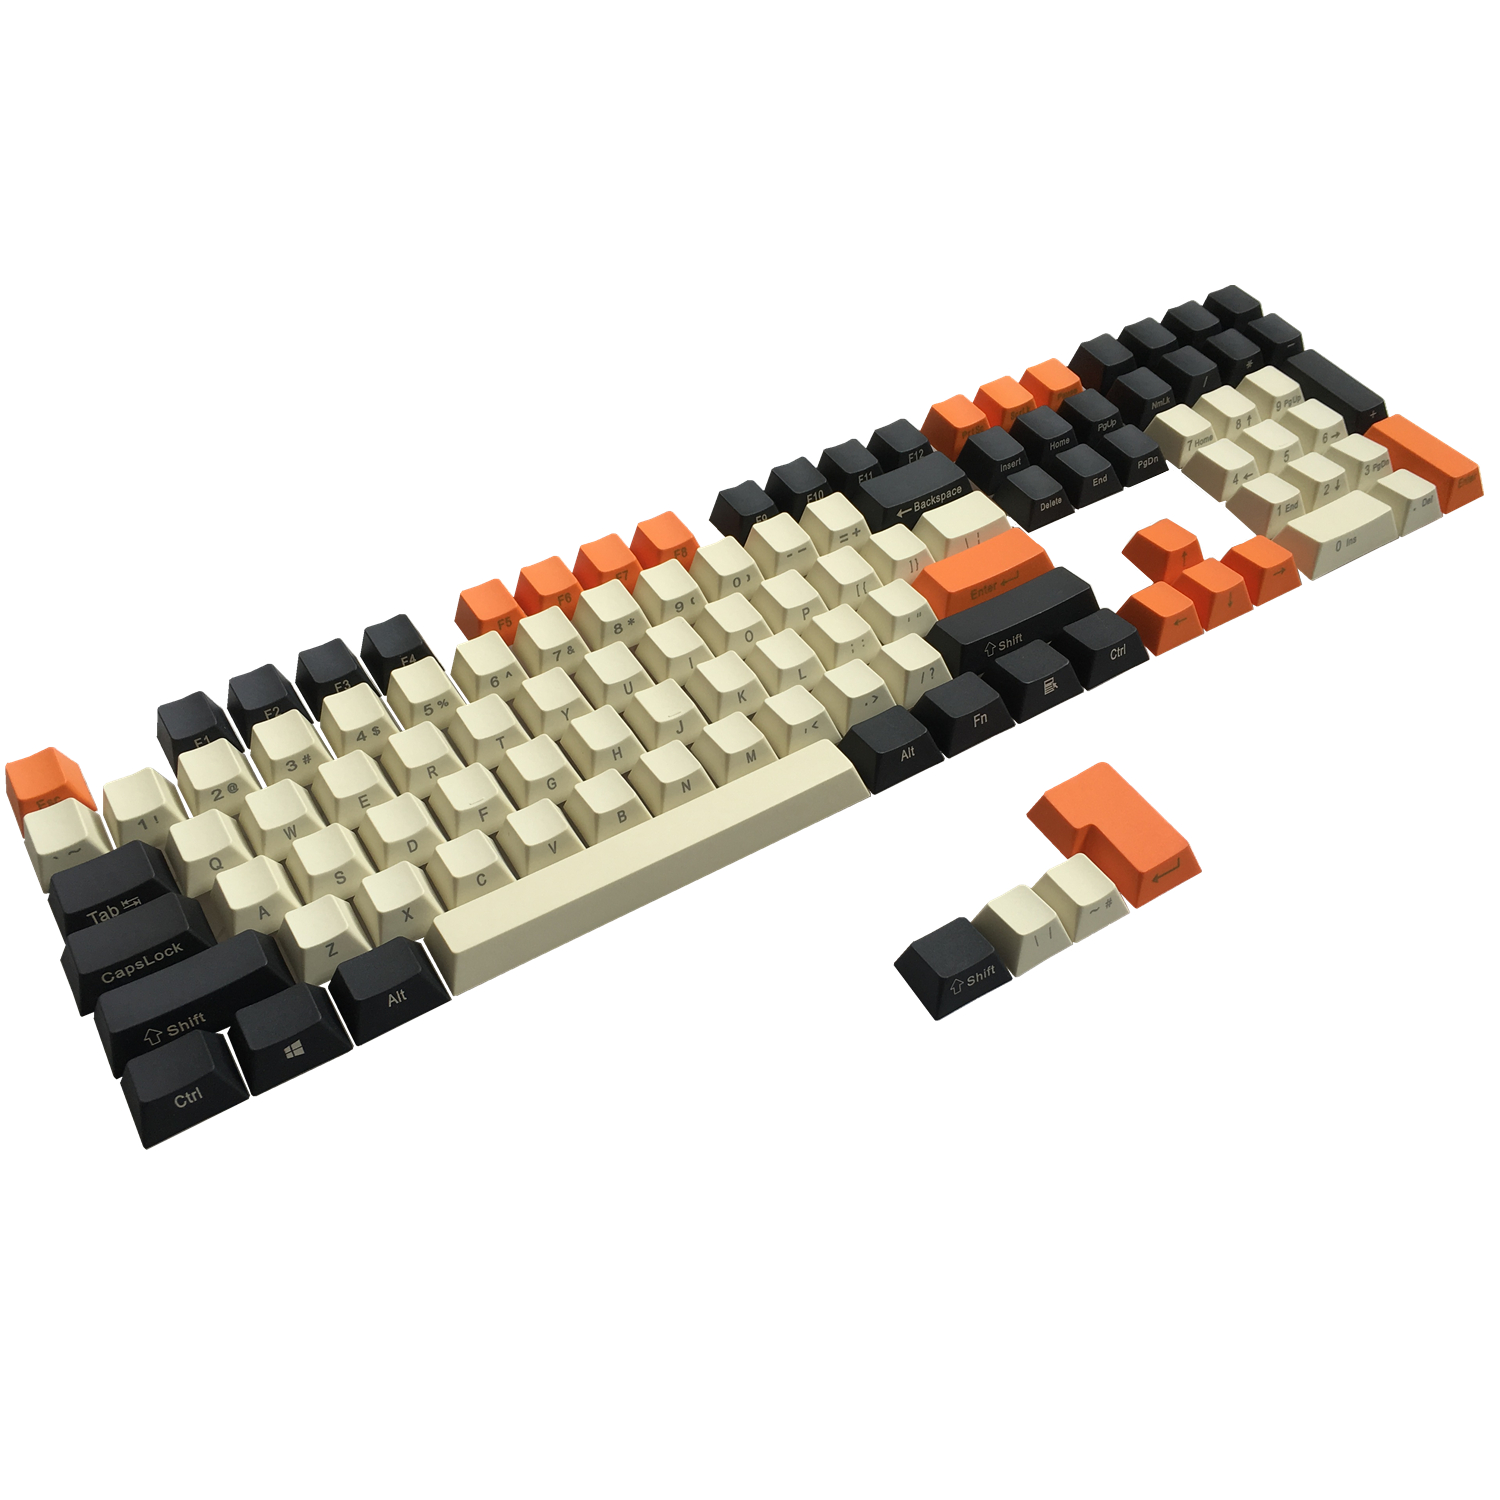 PBT Carbon keycaps Side Print ANSI ISO Cherry MX Keycap Set For 60%/<font><b>TKL</b></font> 87/104/108 MX <font><b>Mechanical</b></font> <font><b>Keyboard</b></font> Fit Anne Akko X Ducky image